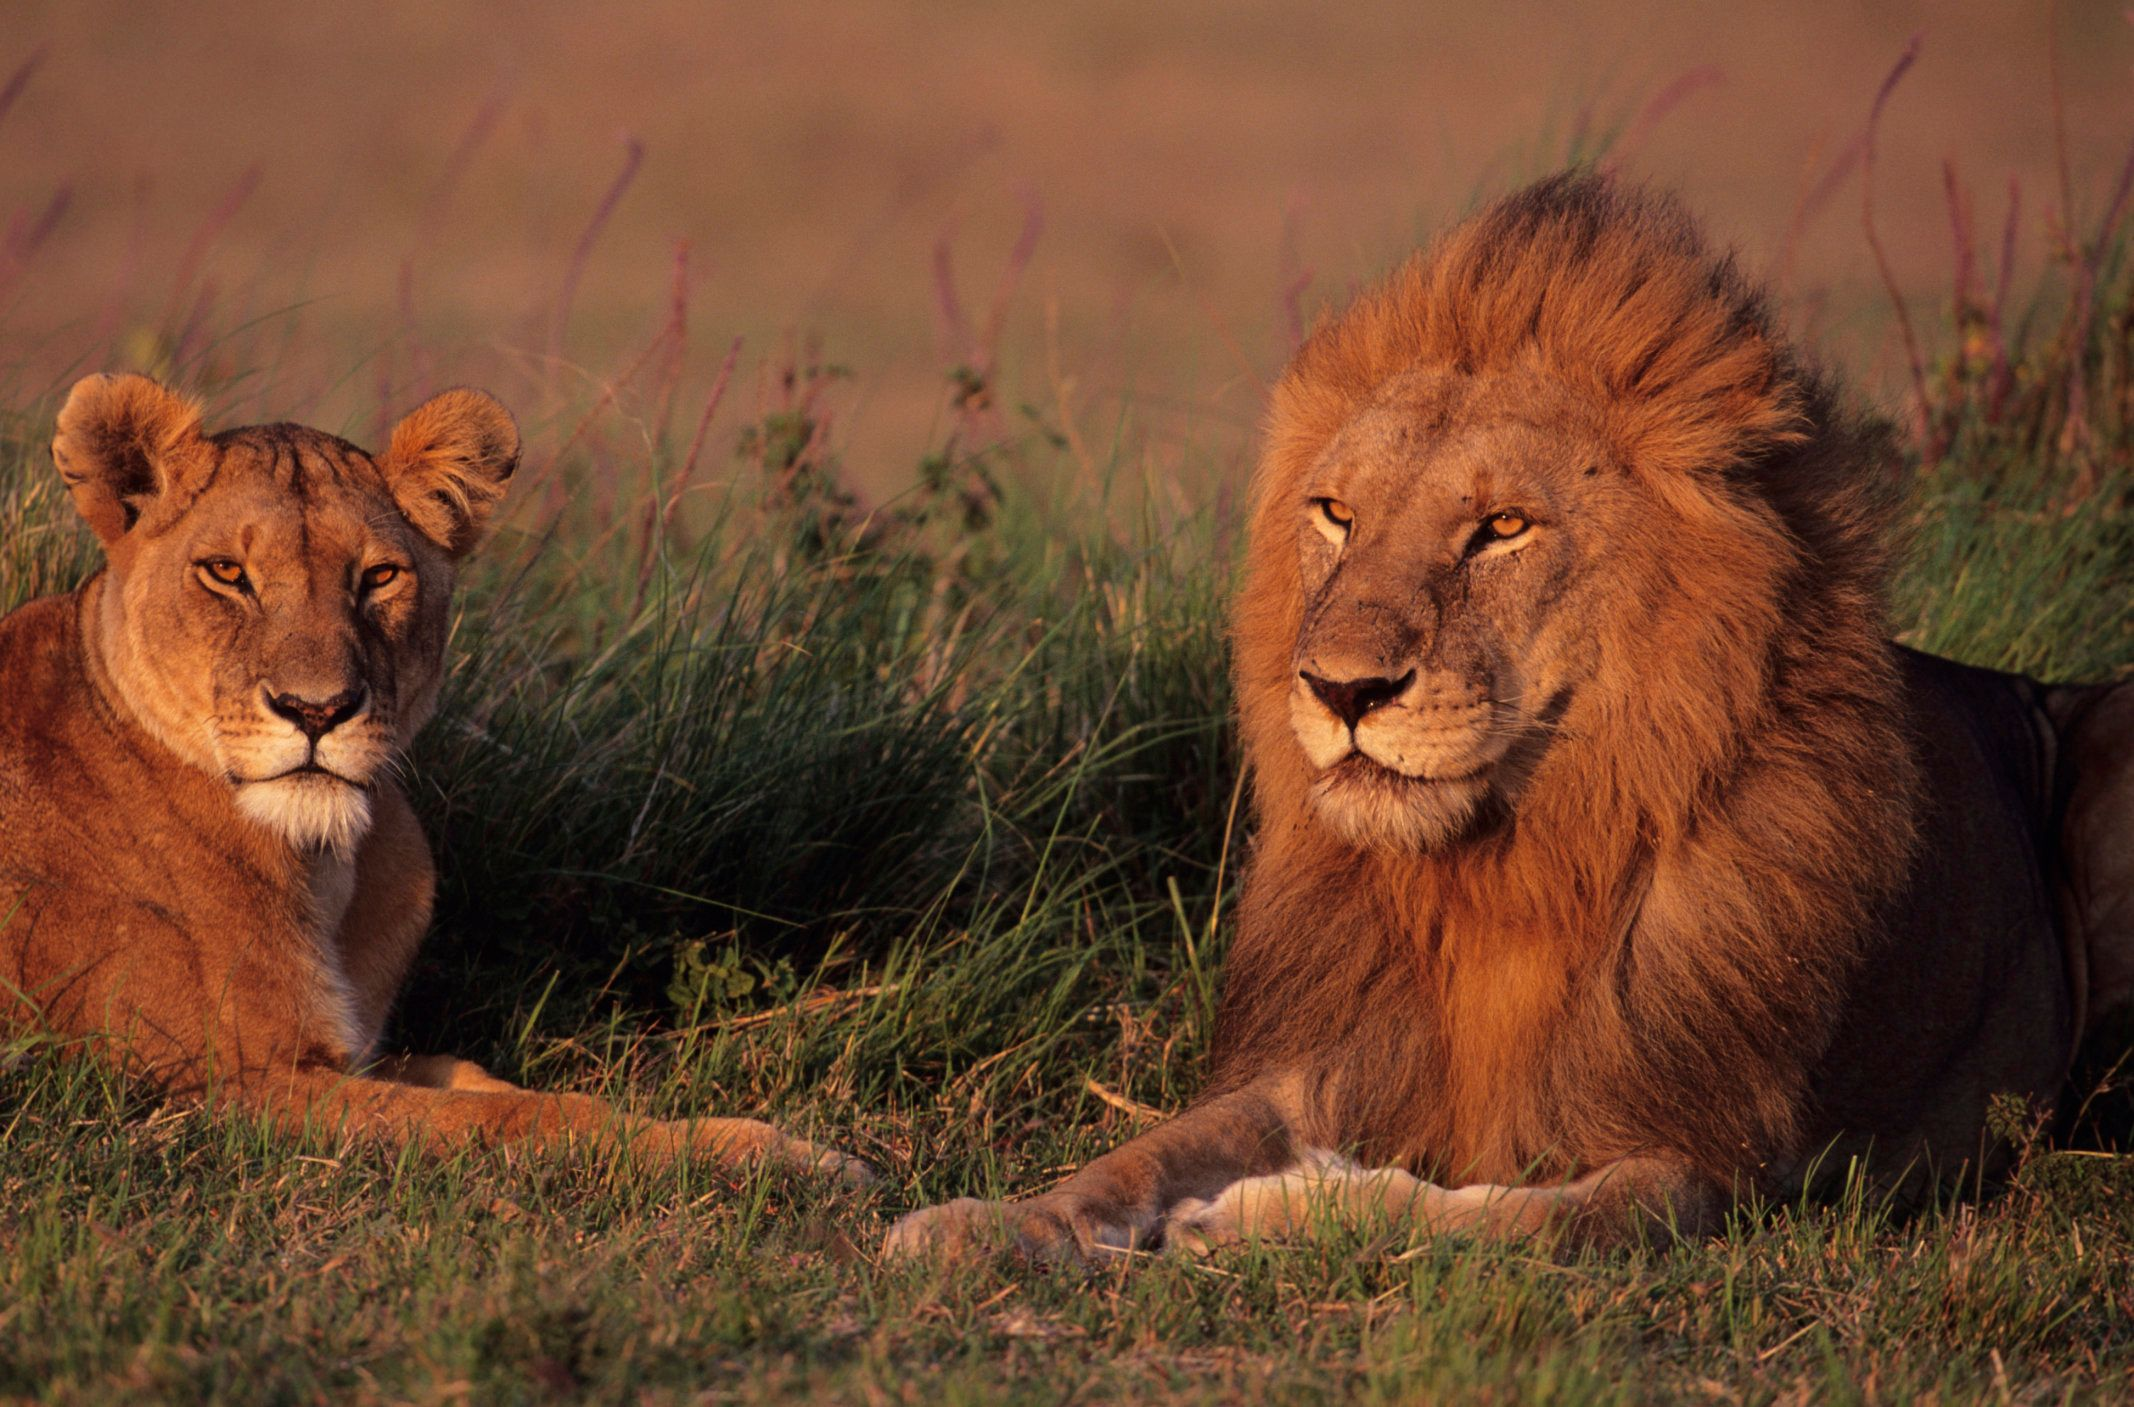 Zookeepers Kill 2 Lions To Save 'Suicidal' Man Who Entered